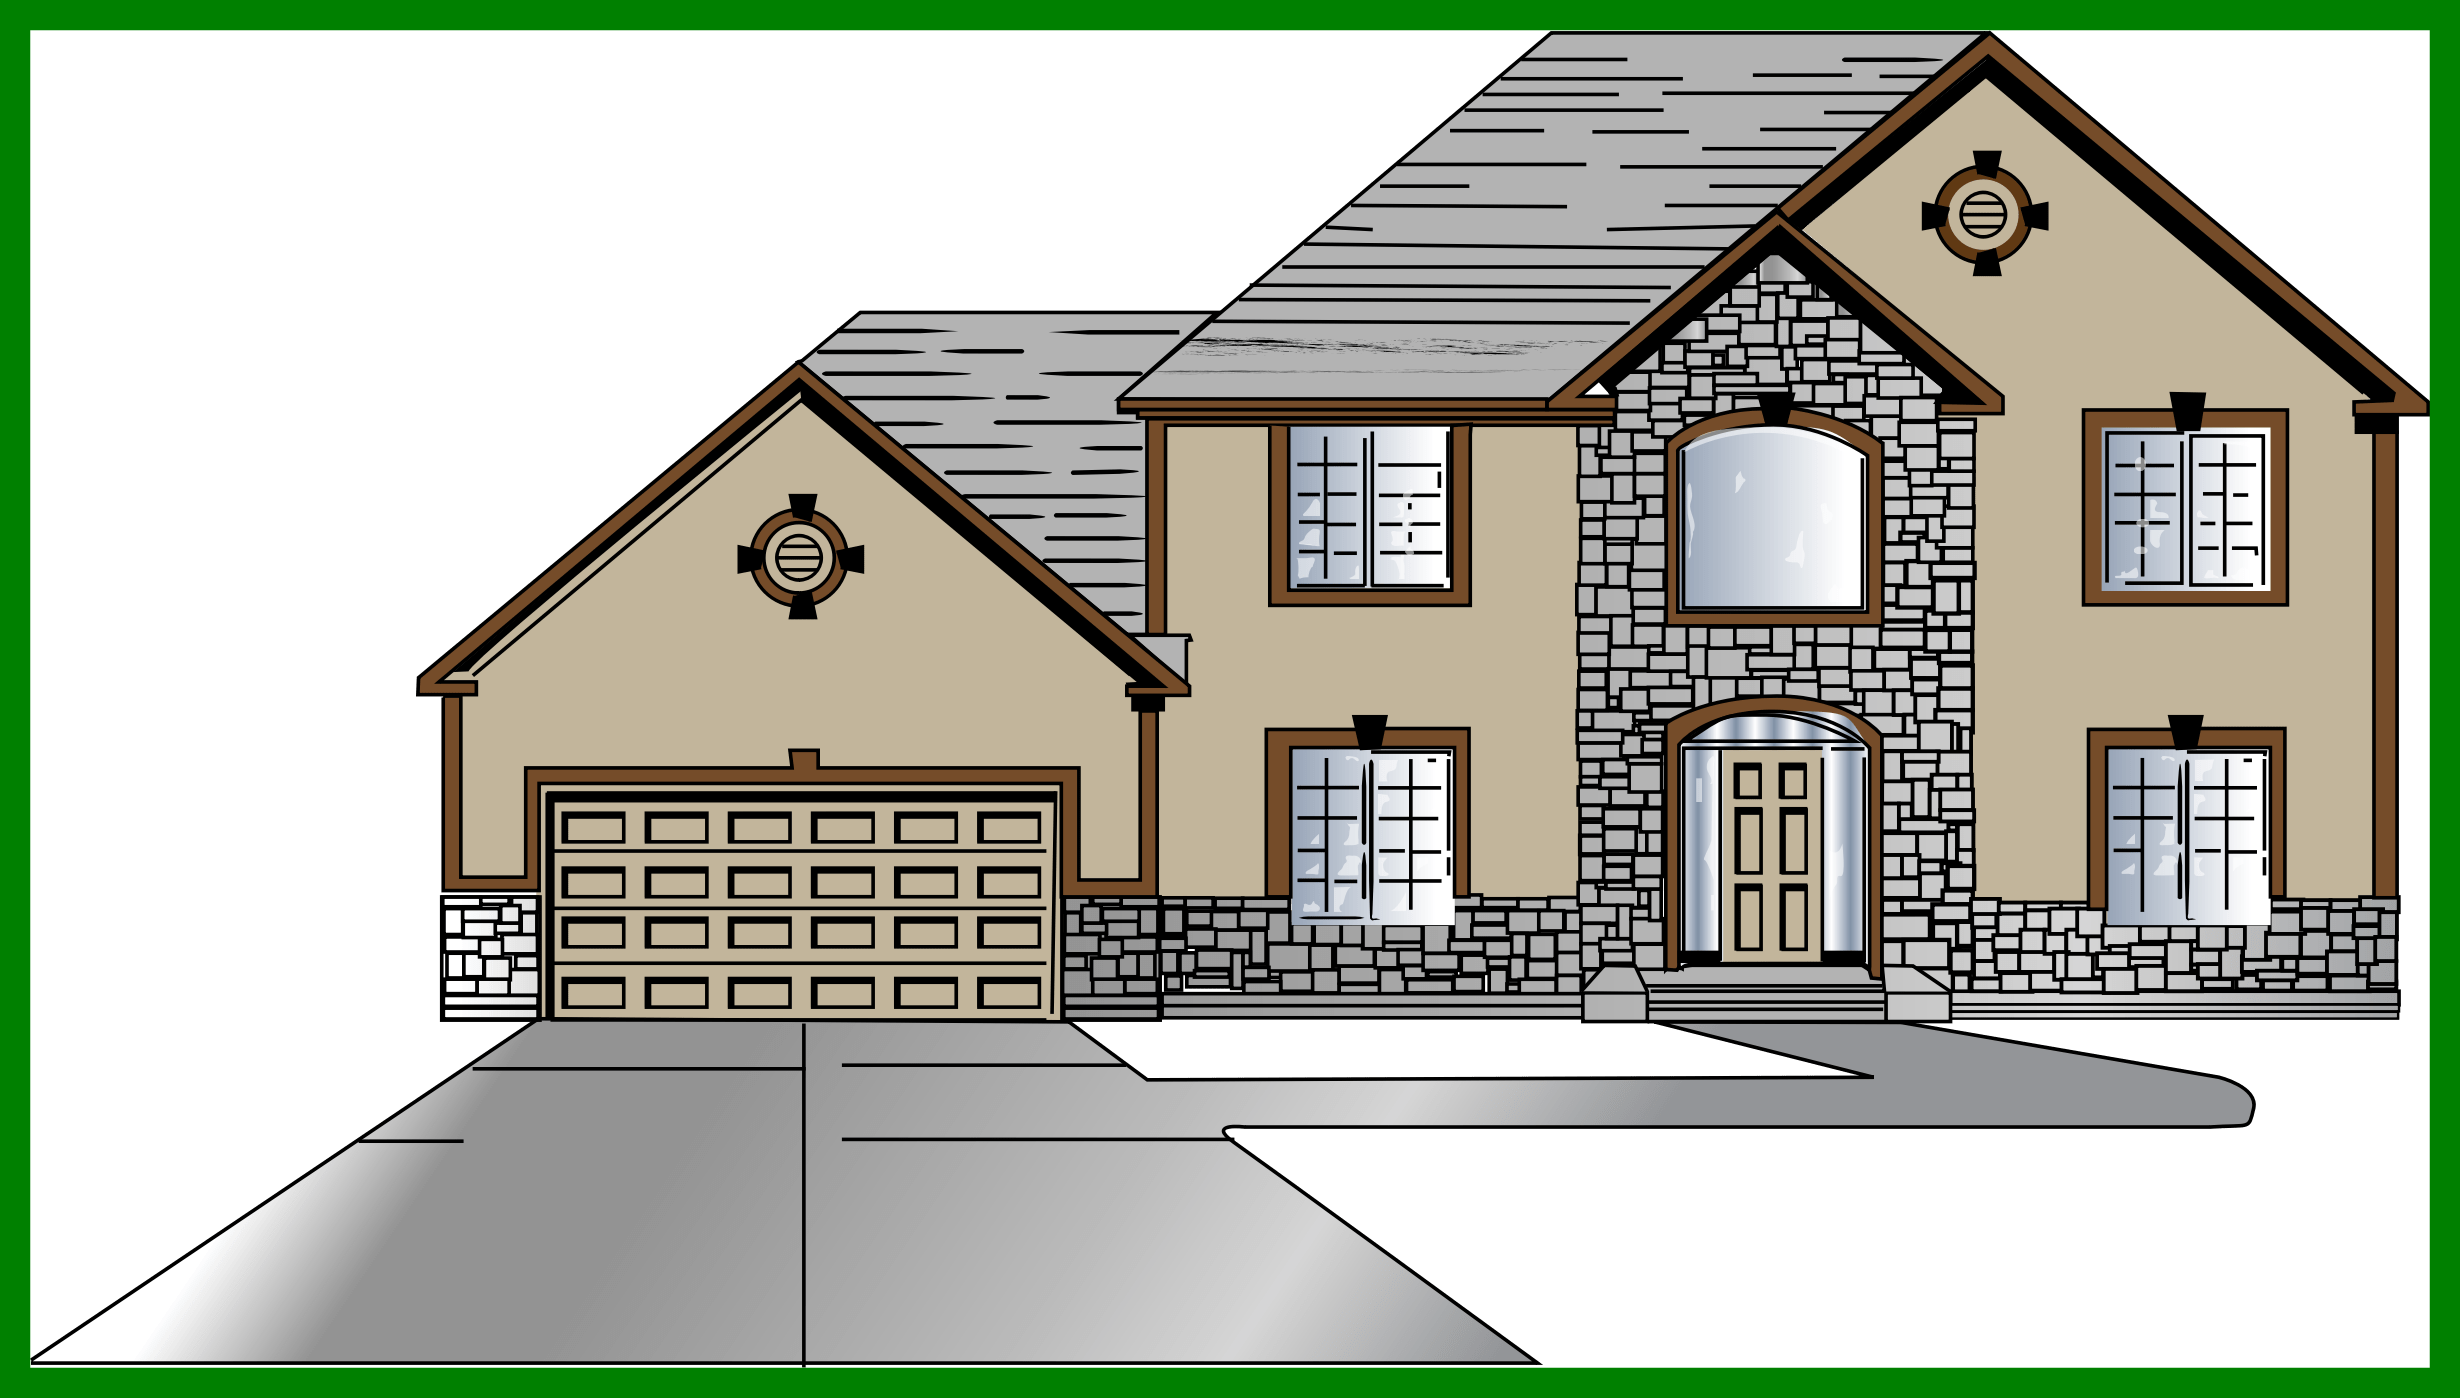 jpg free download Appealing of a cute. Mansion clipart property preservation.